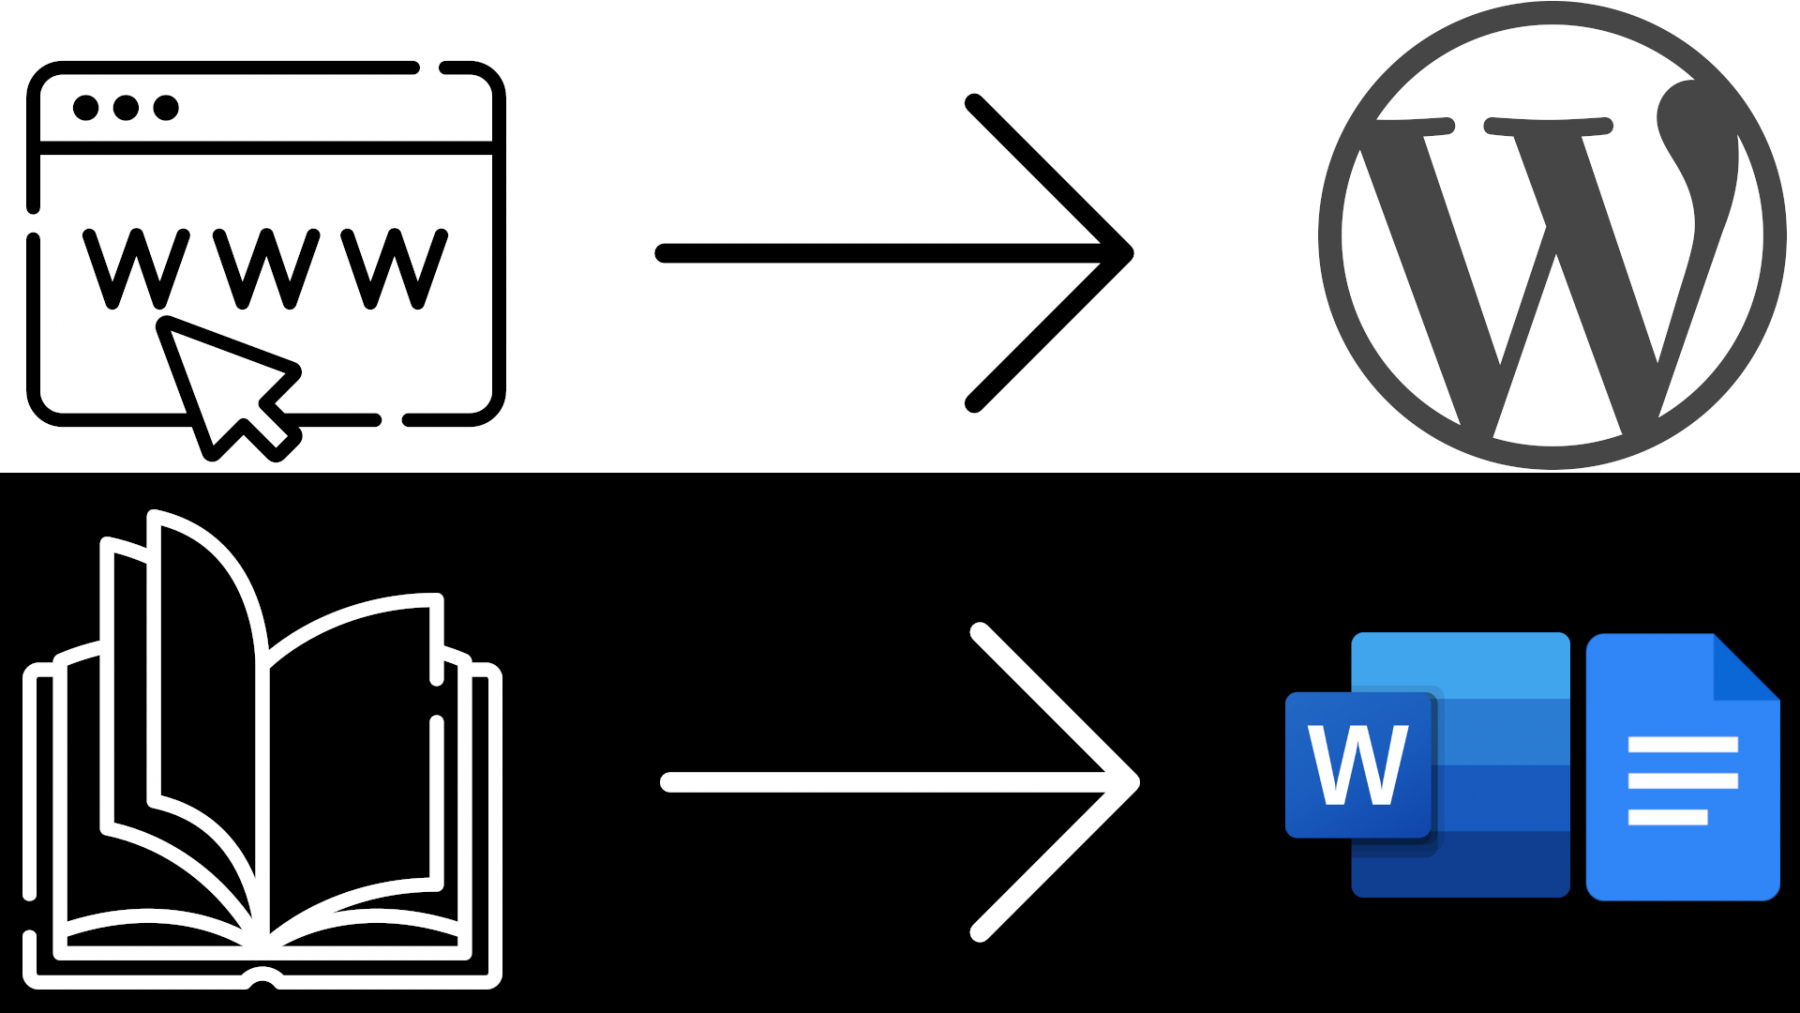 Most websites are made with WordPress, most books and documents are made with Microsoft Word or Google Docs